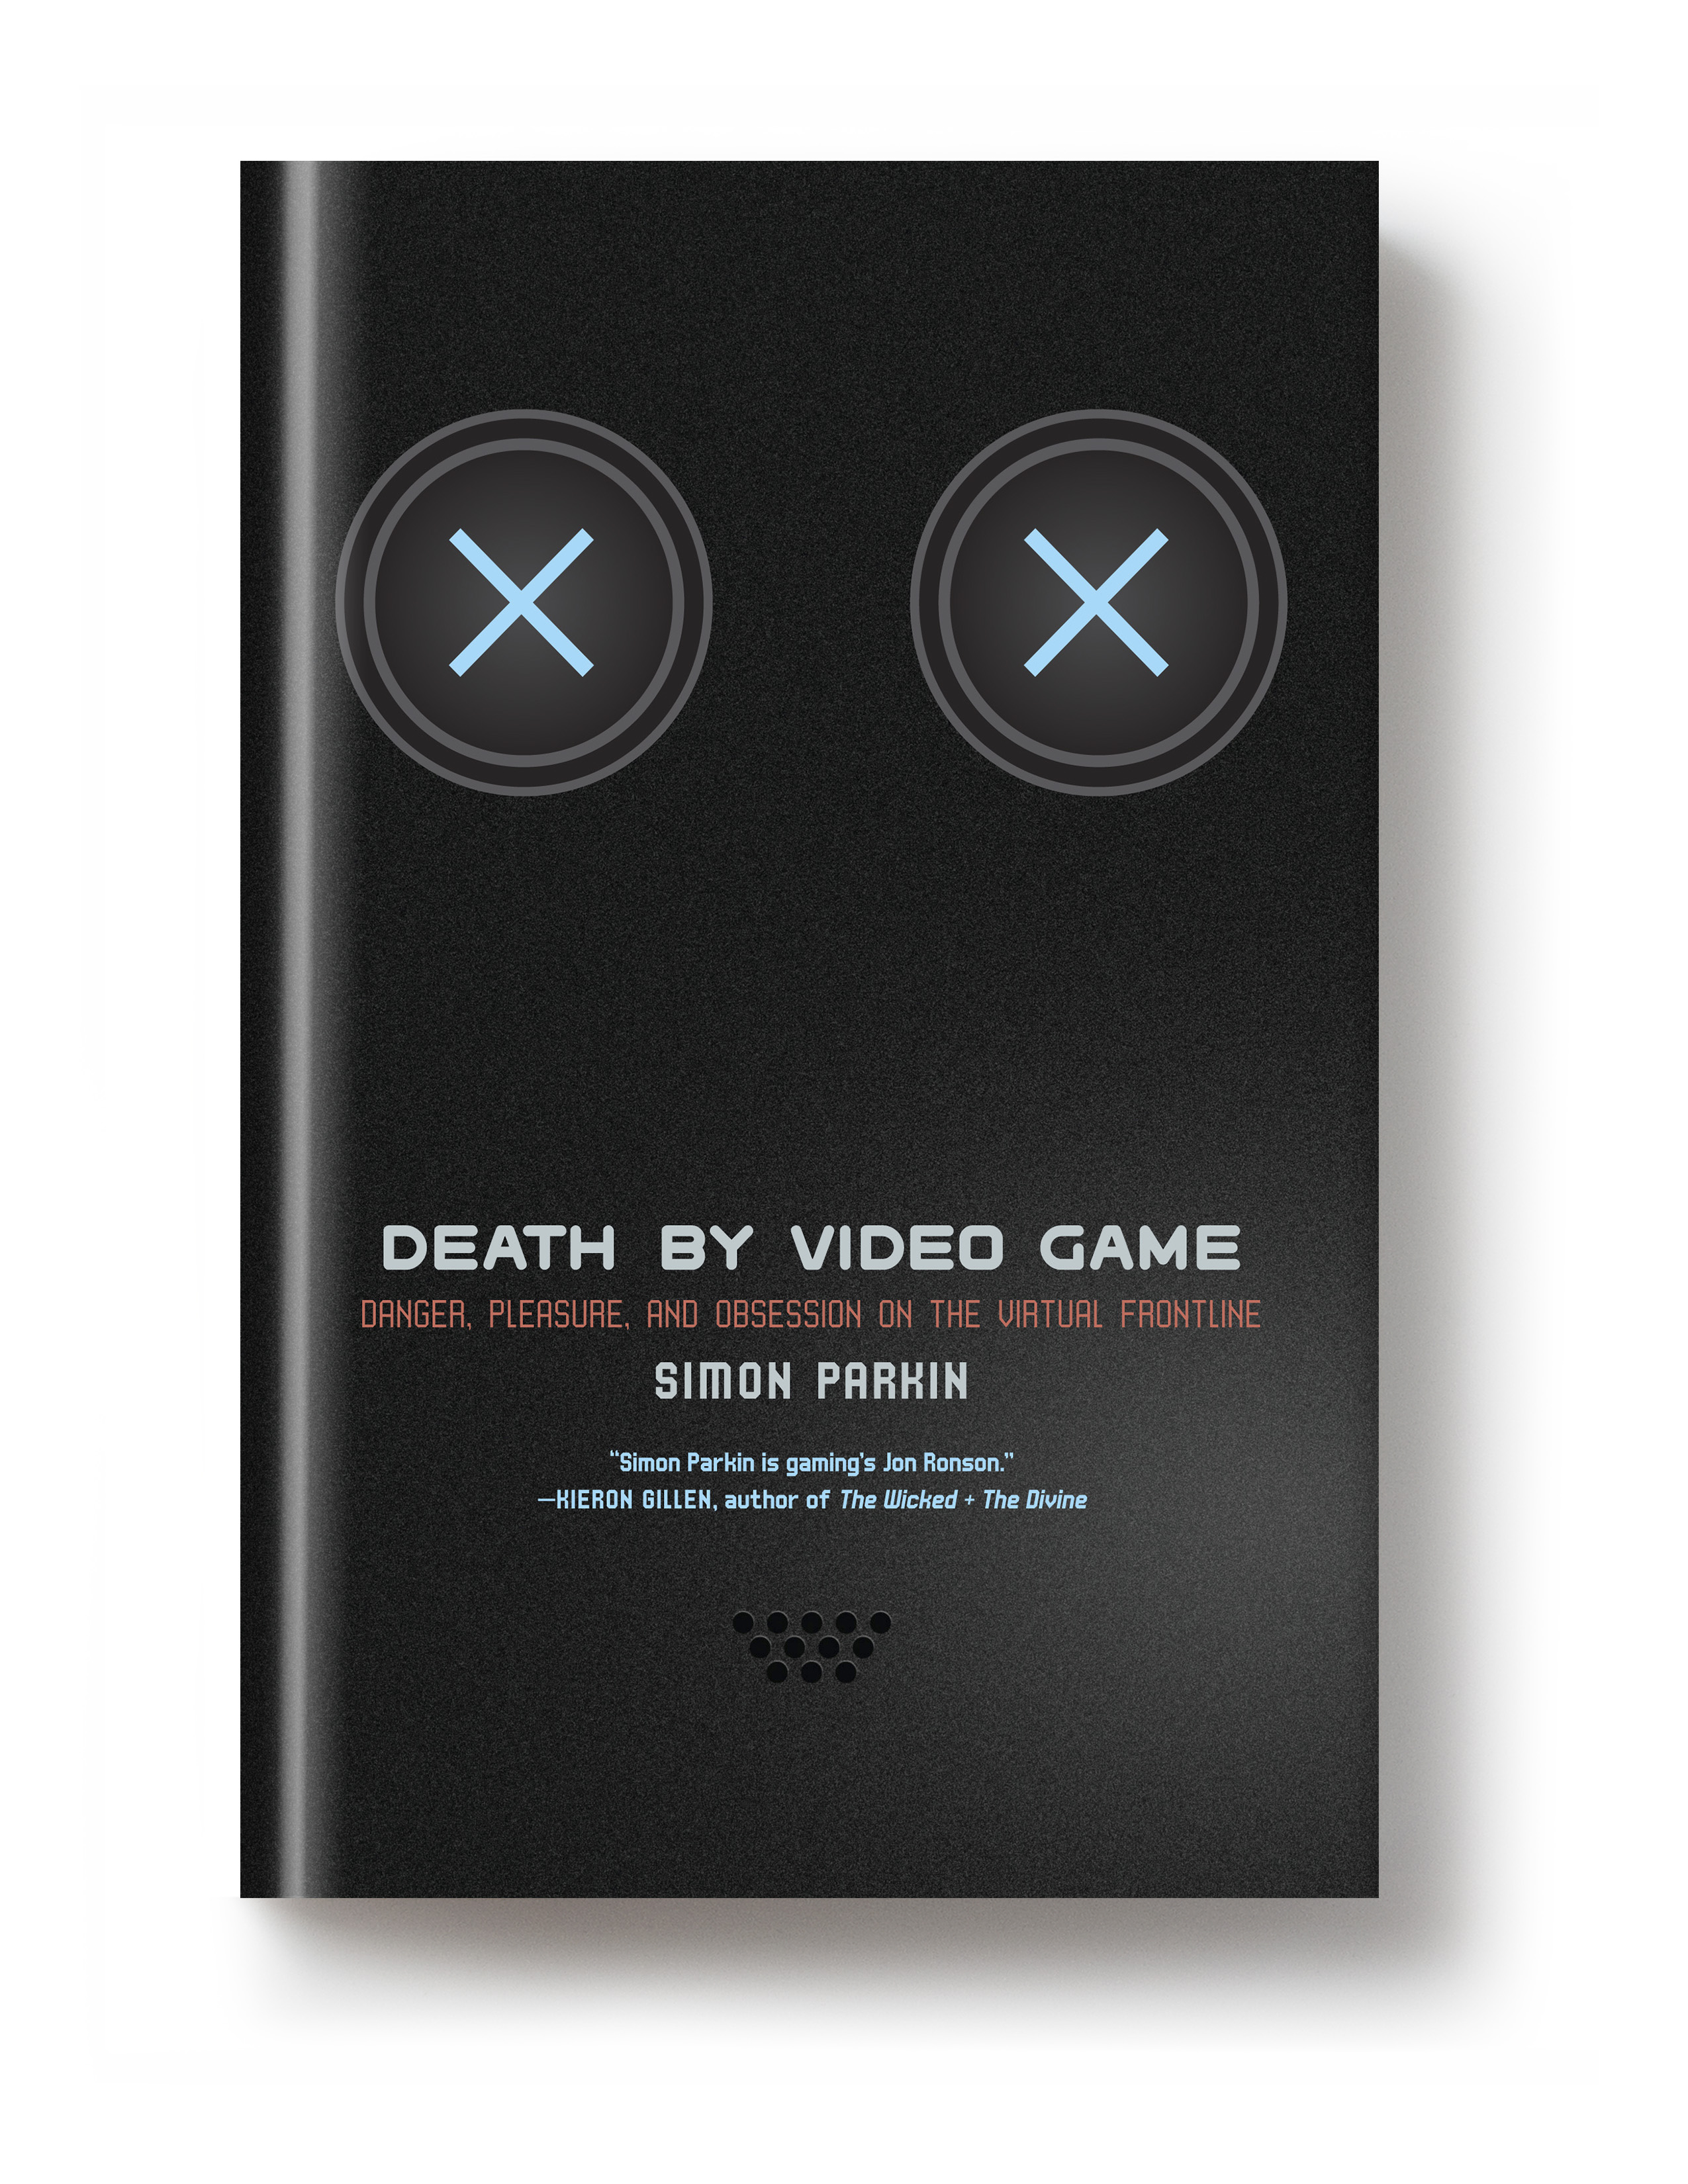 At long last: <i>Death by Video Game</i>, the video game